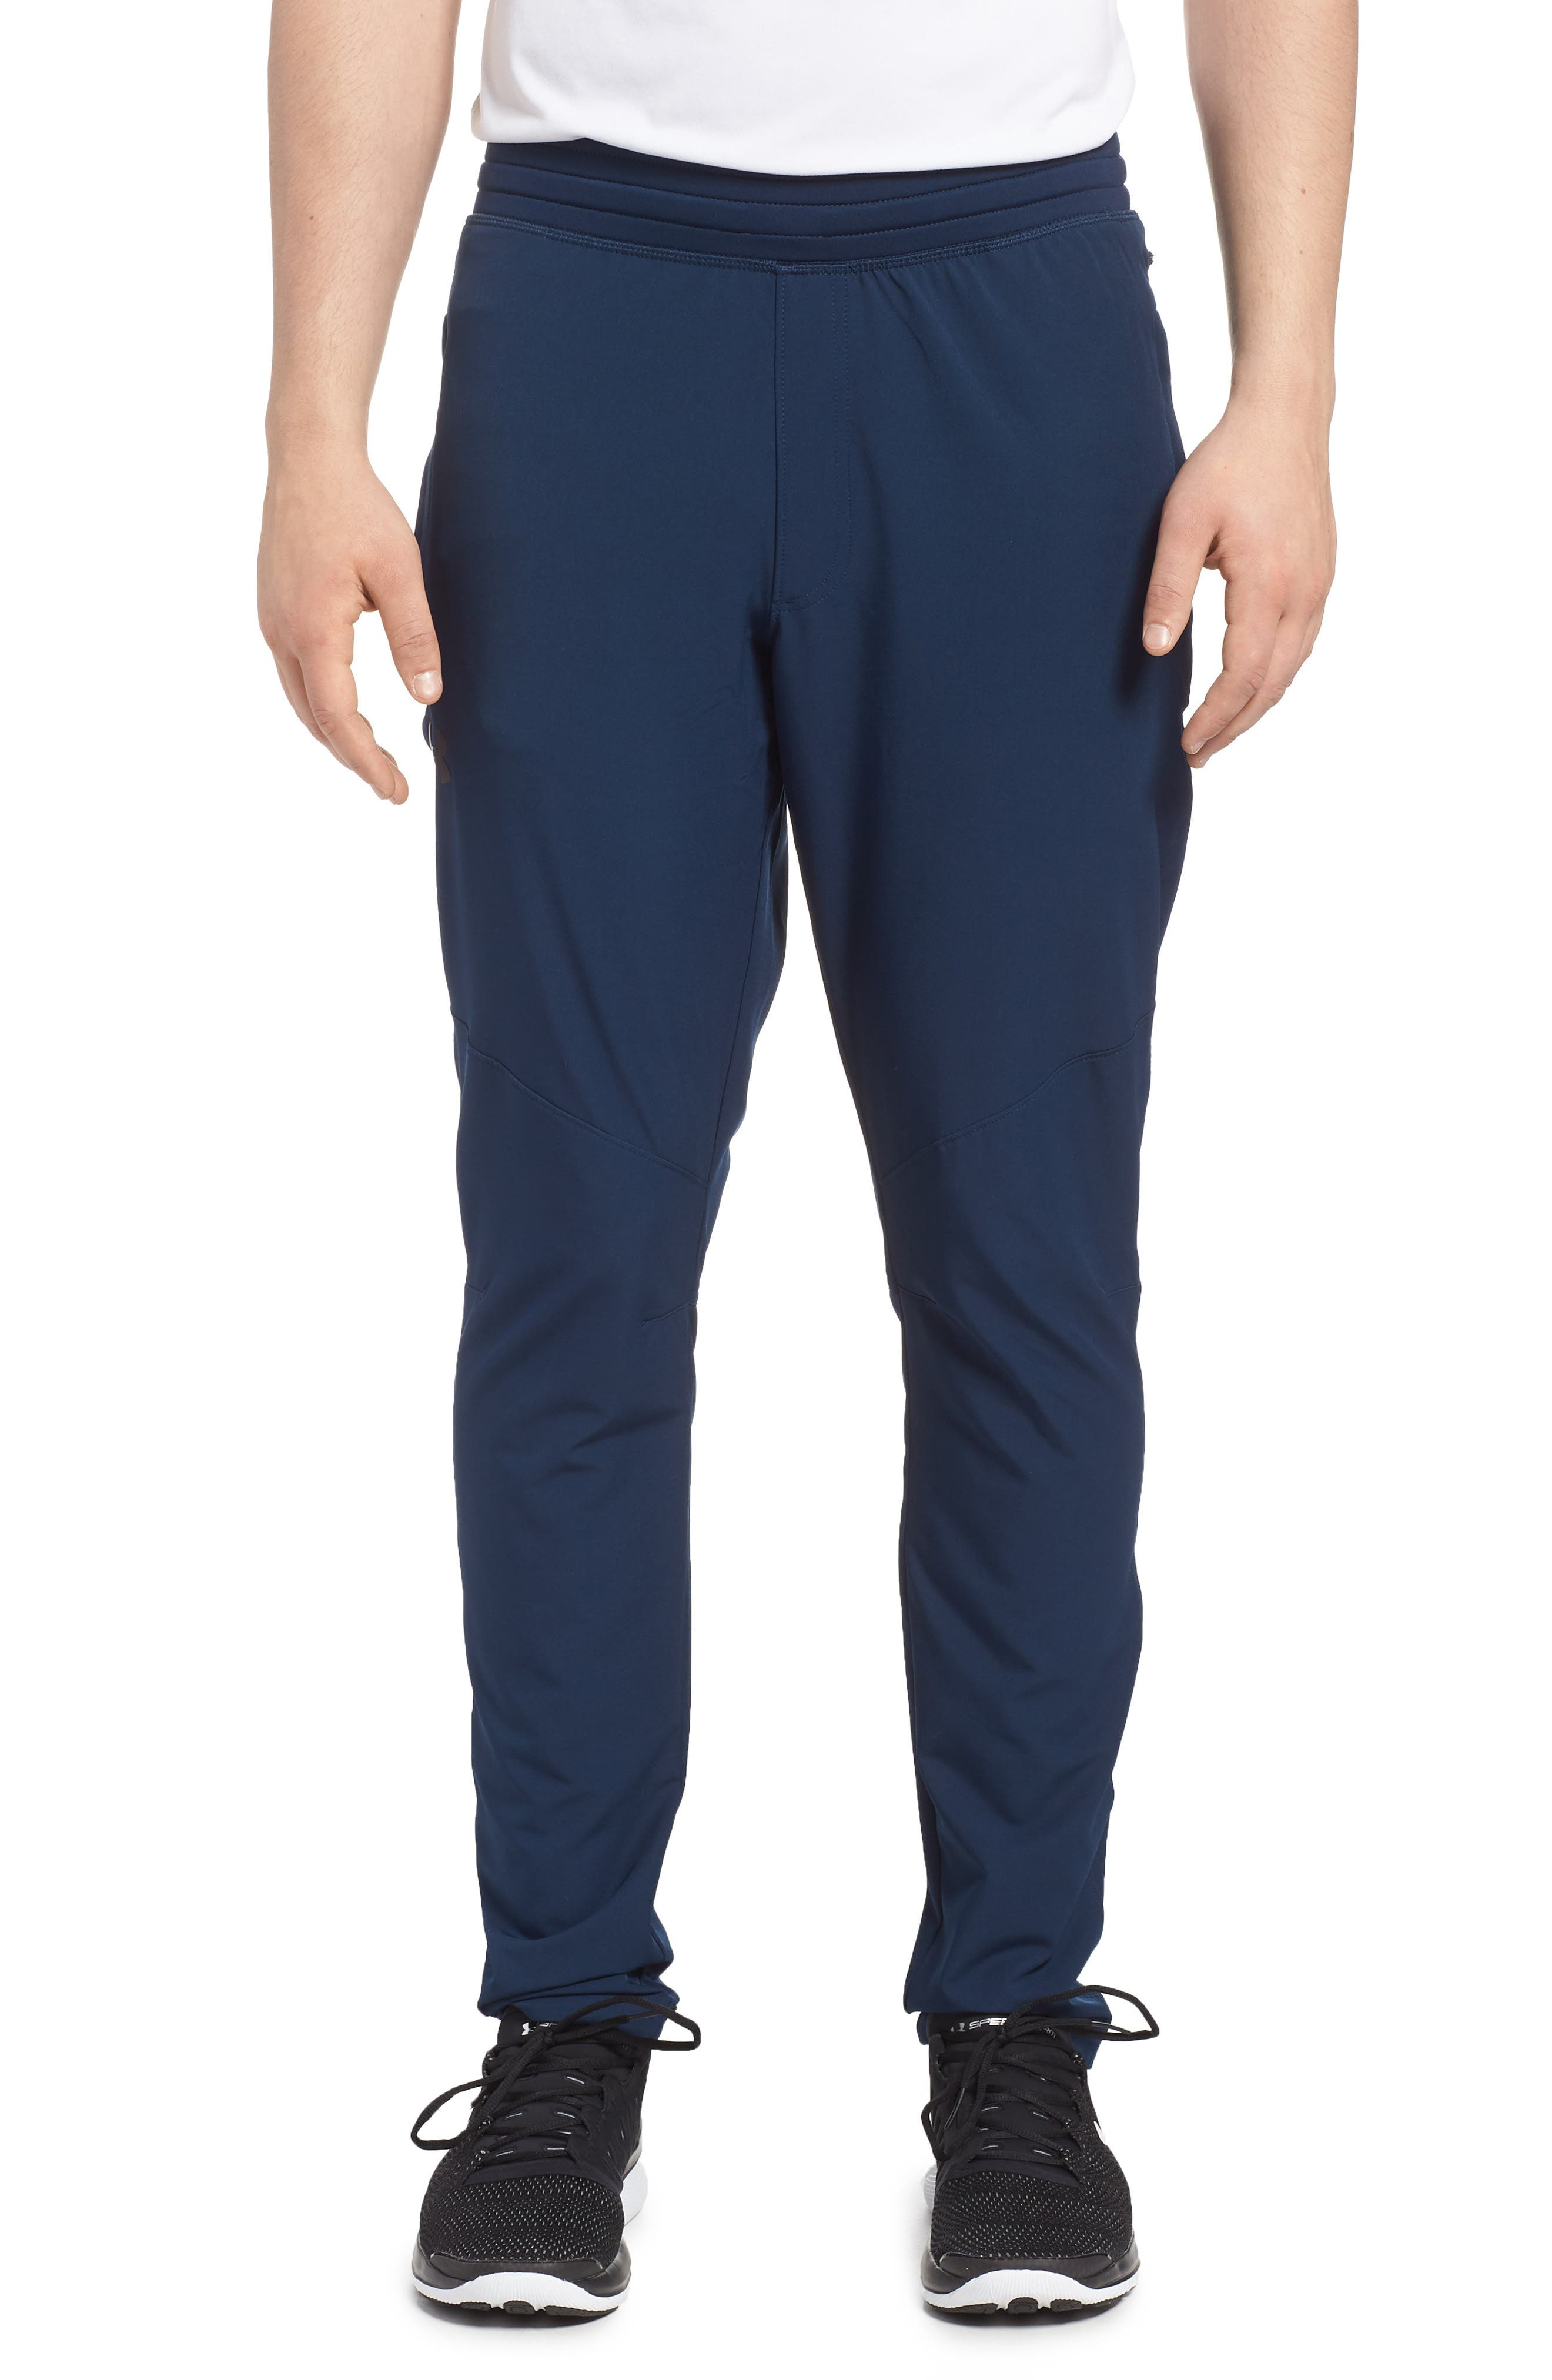 Fitted Woven Training Pants,                         Main,                         color, Academy/ Black